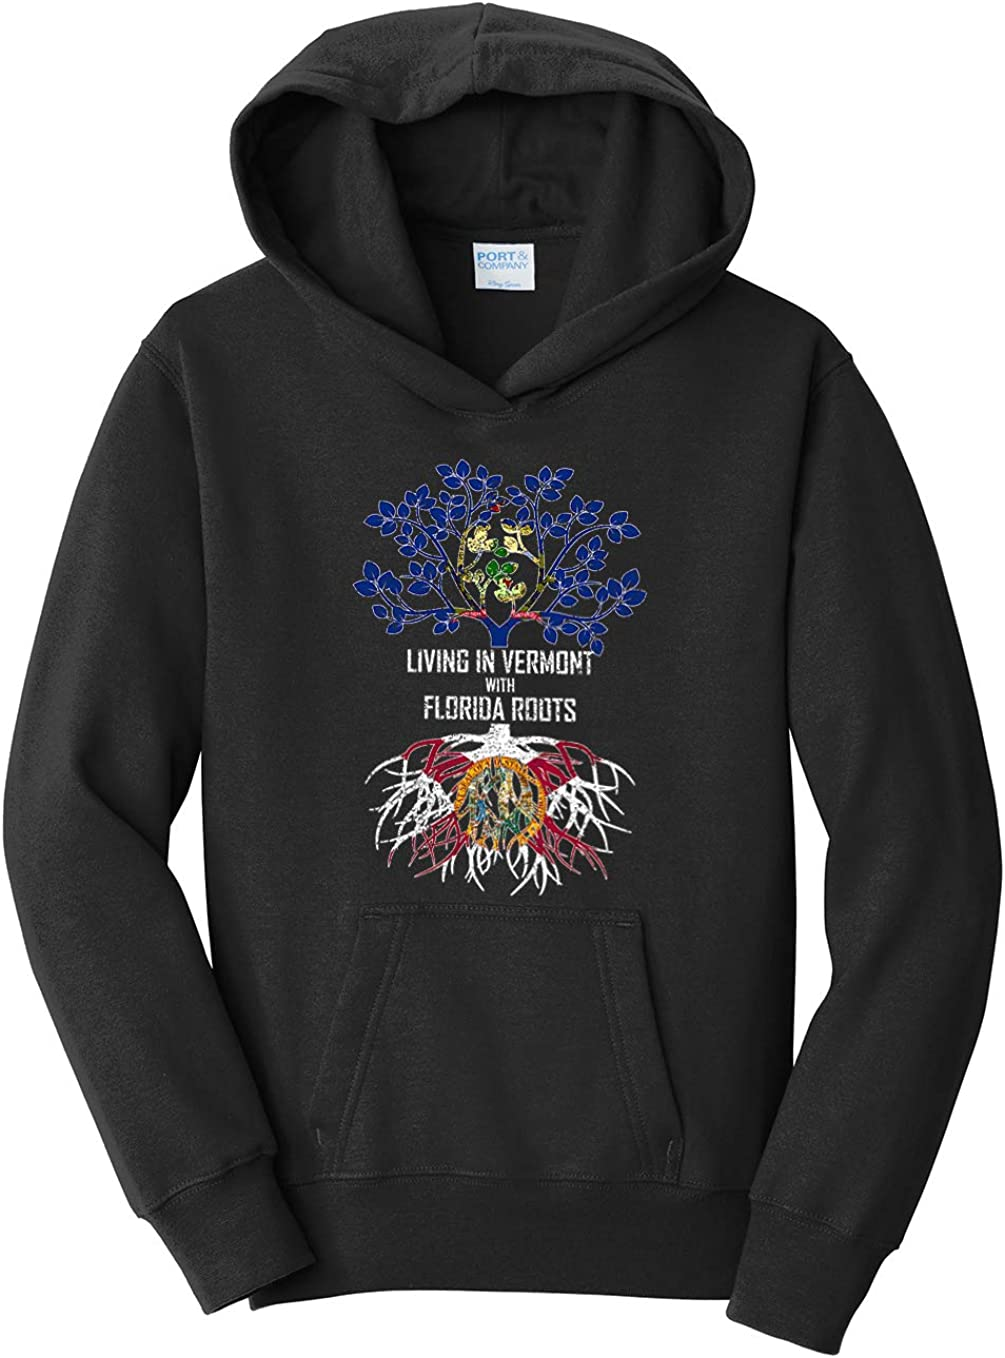 Tenacitee Girls Living in Vermont with Florida Roots Hooded Sweatshirt